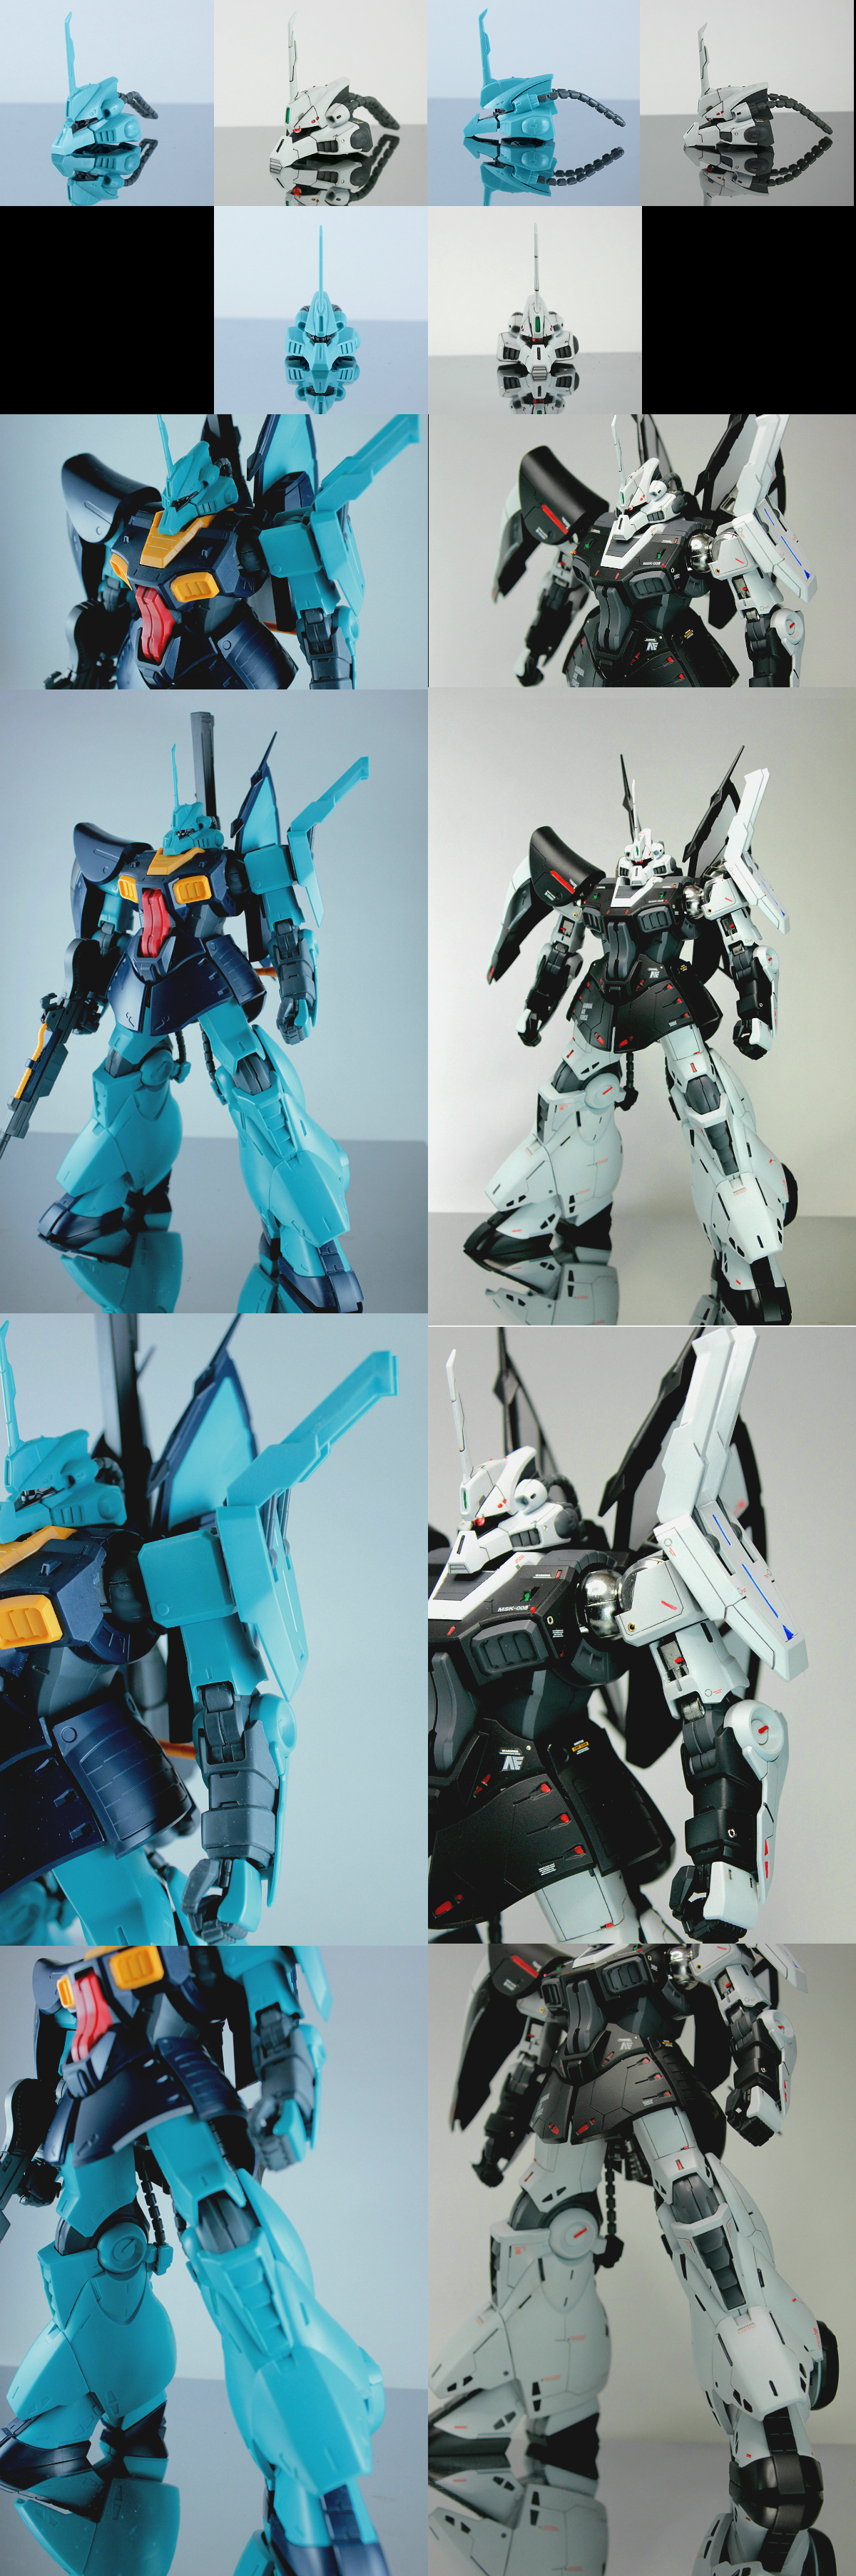 [PHOTO REVIEW] Amazing Improved RE/100 DIJEH Amuro Image Color Ver. Custom Work by Kouichi.